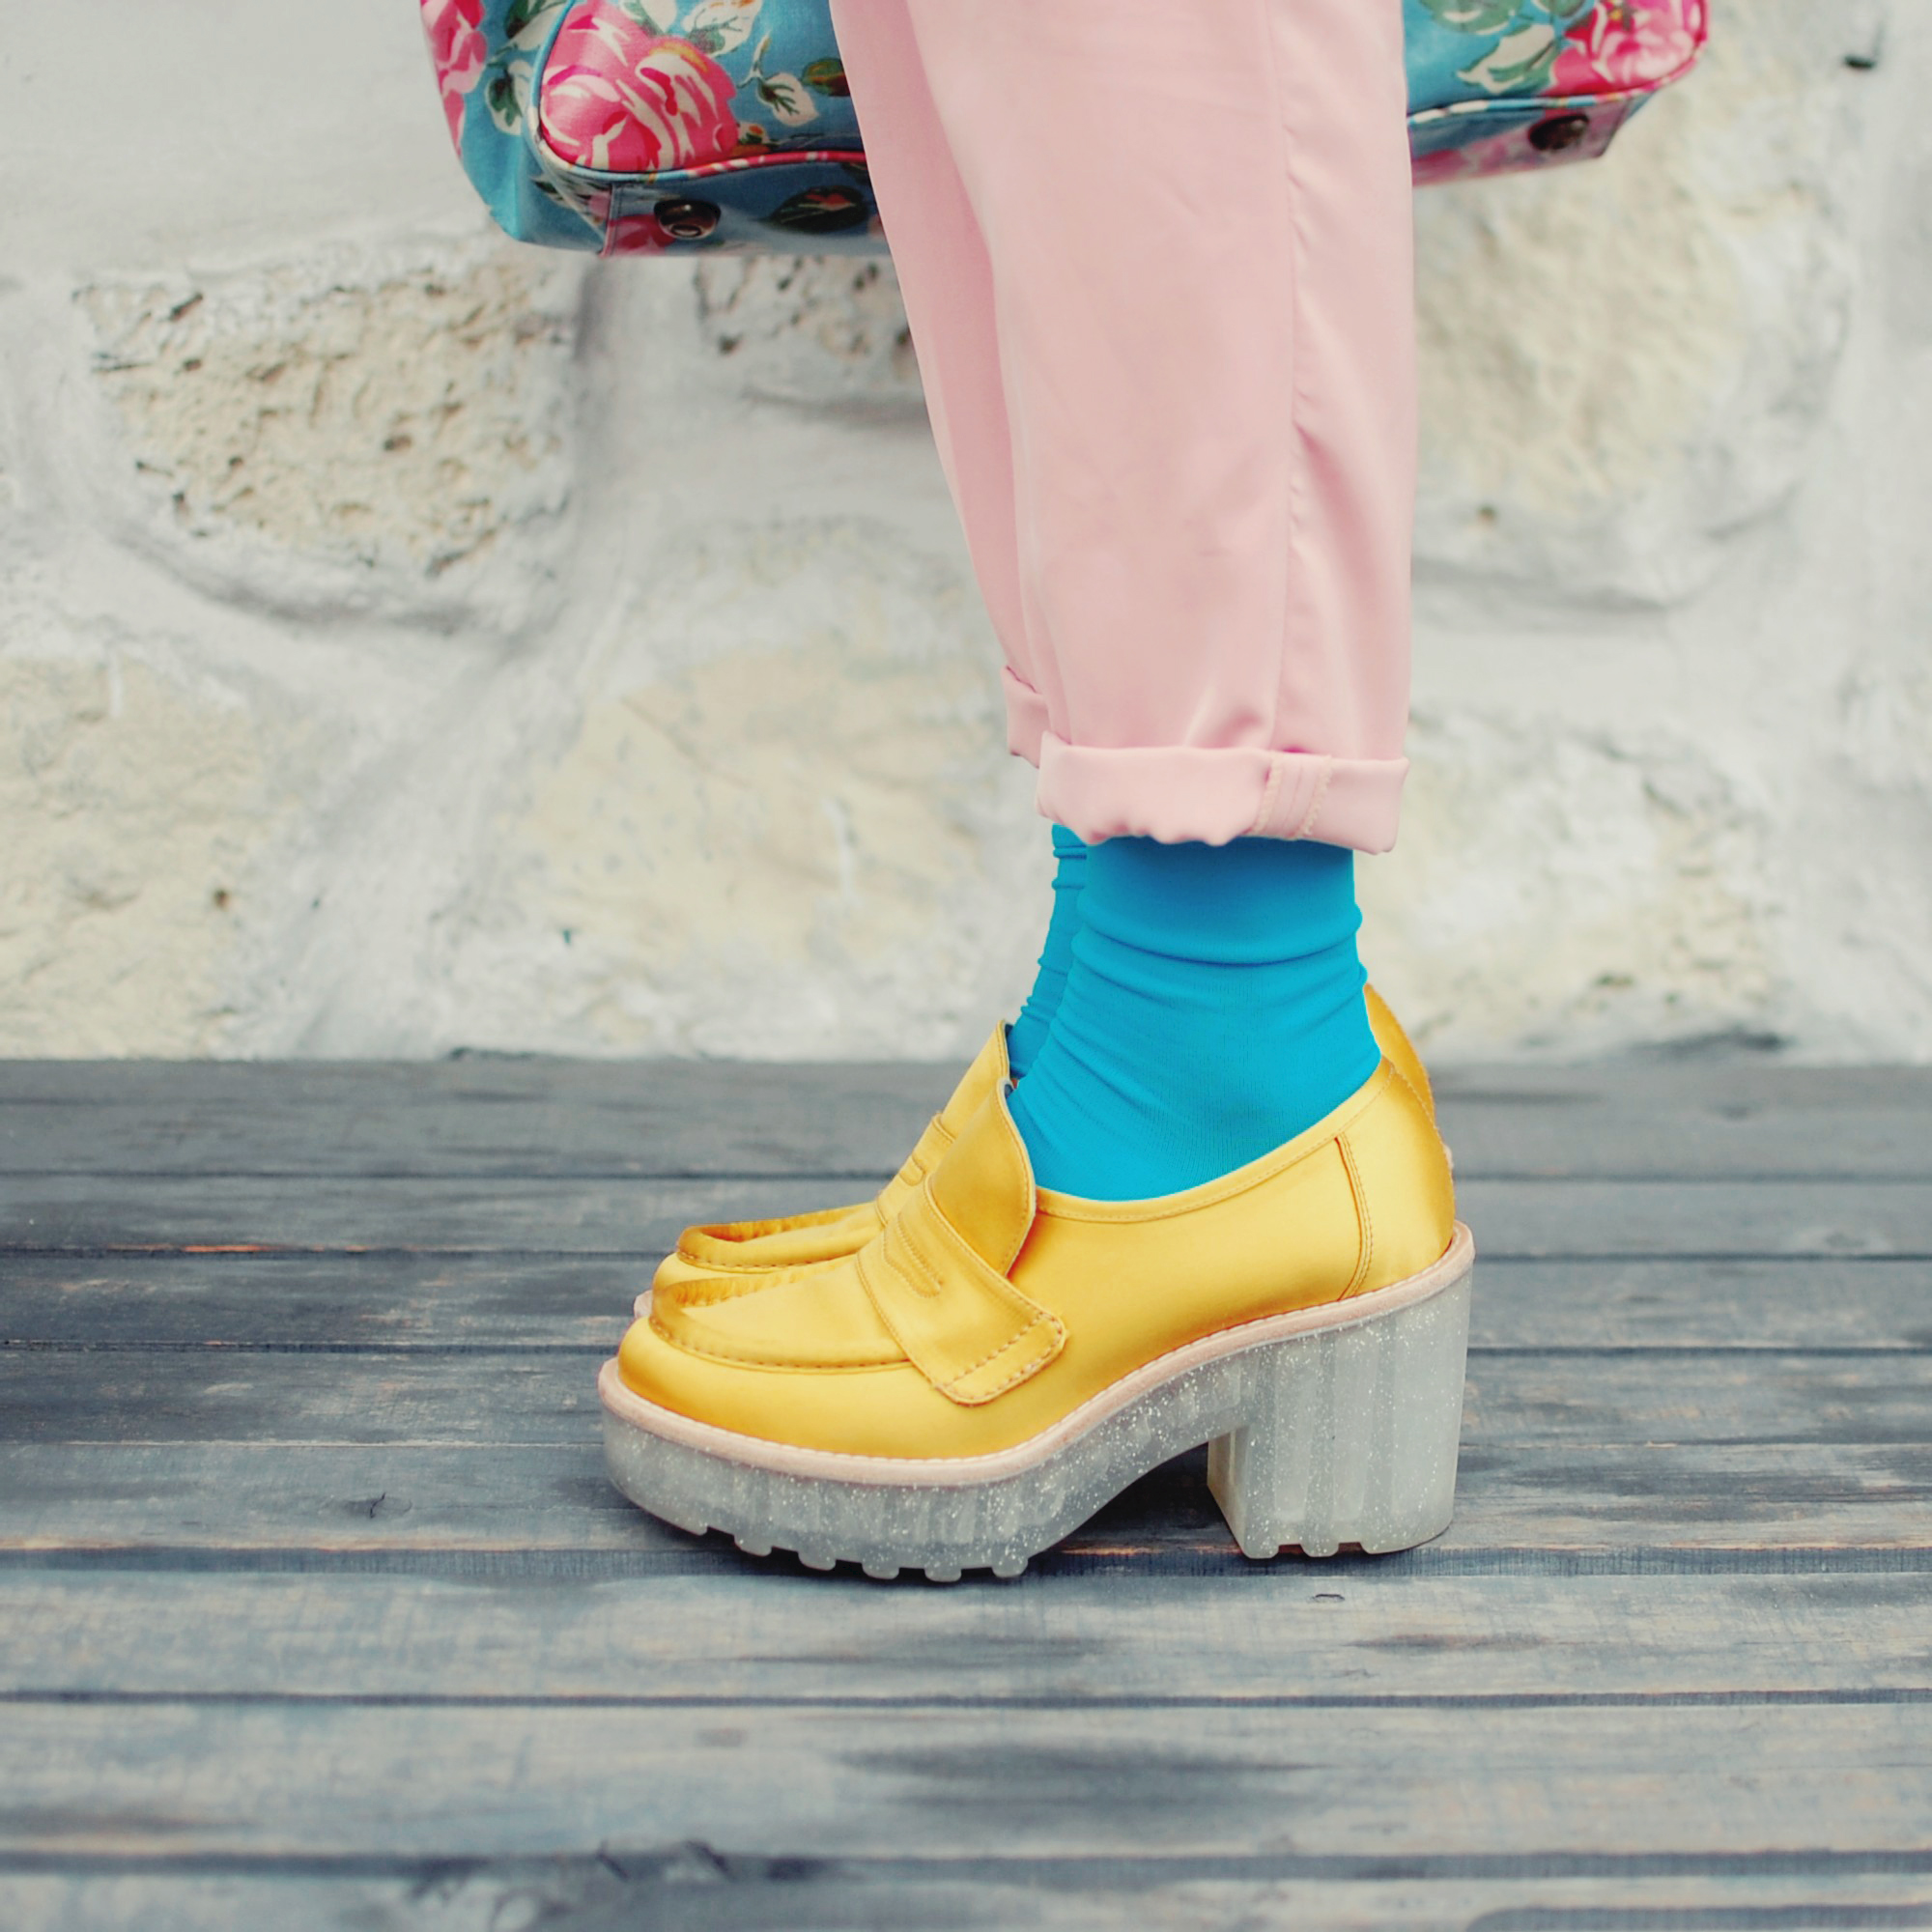 blue socks with yellow shoes